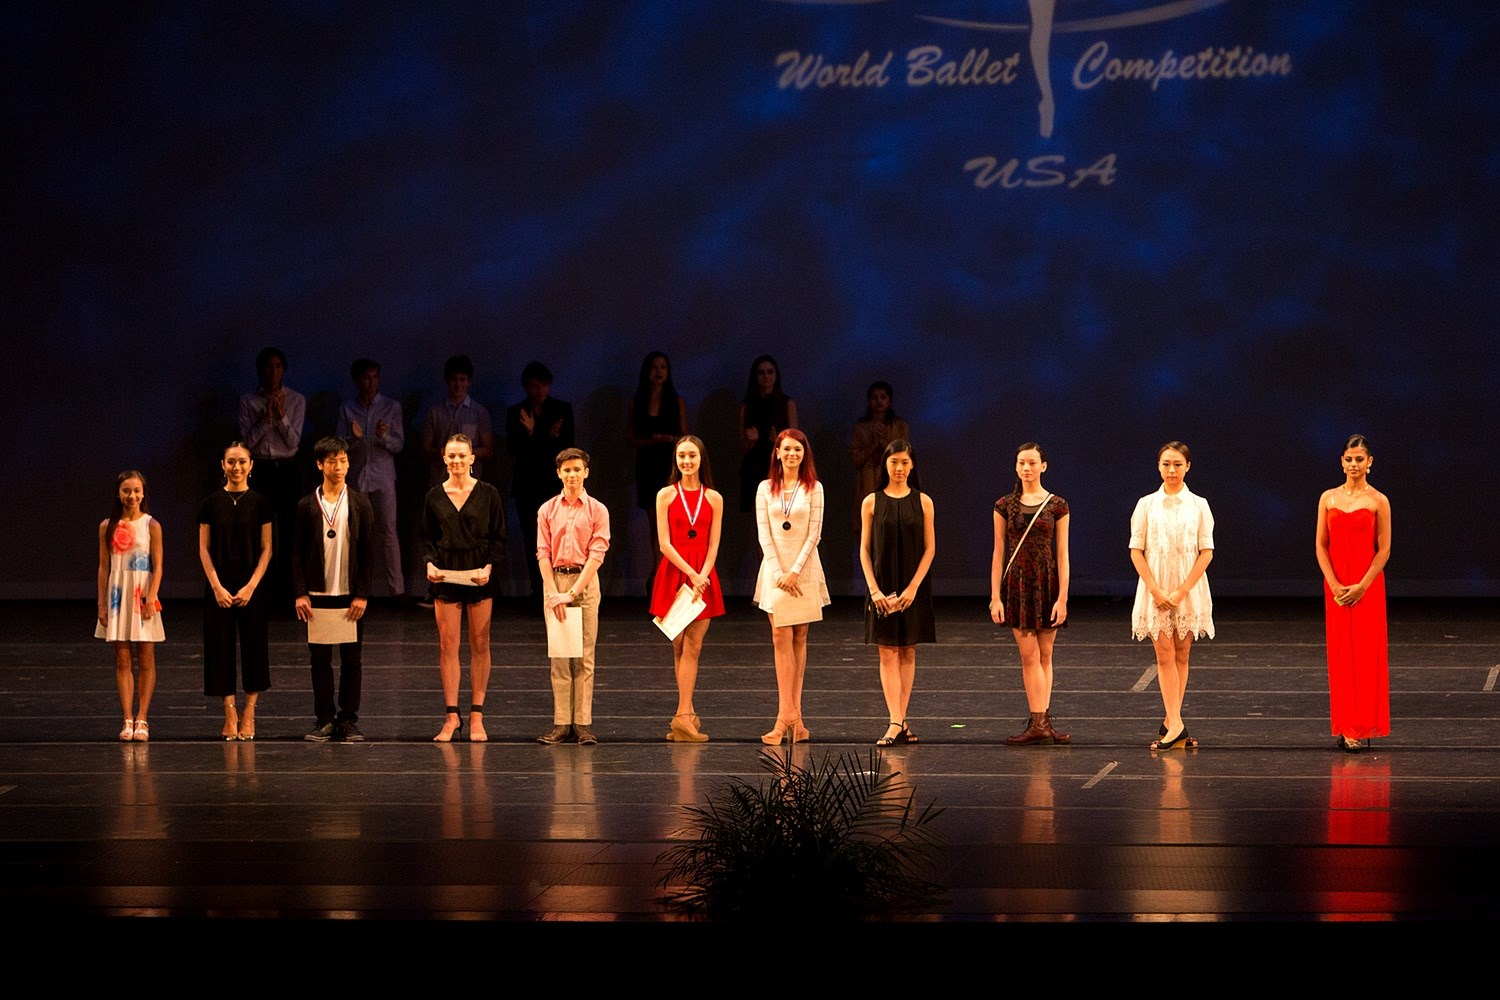 2016 Pre-professional Category Winners. Image courtesy of World Ballet Competition website.